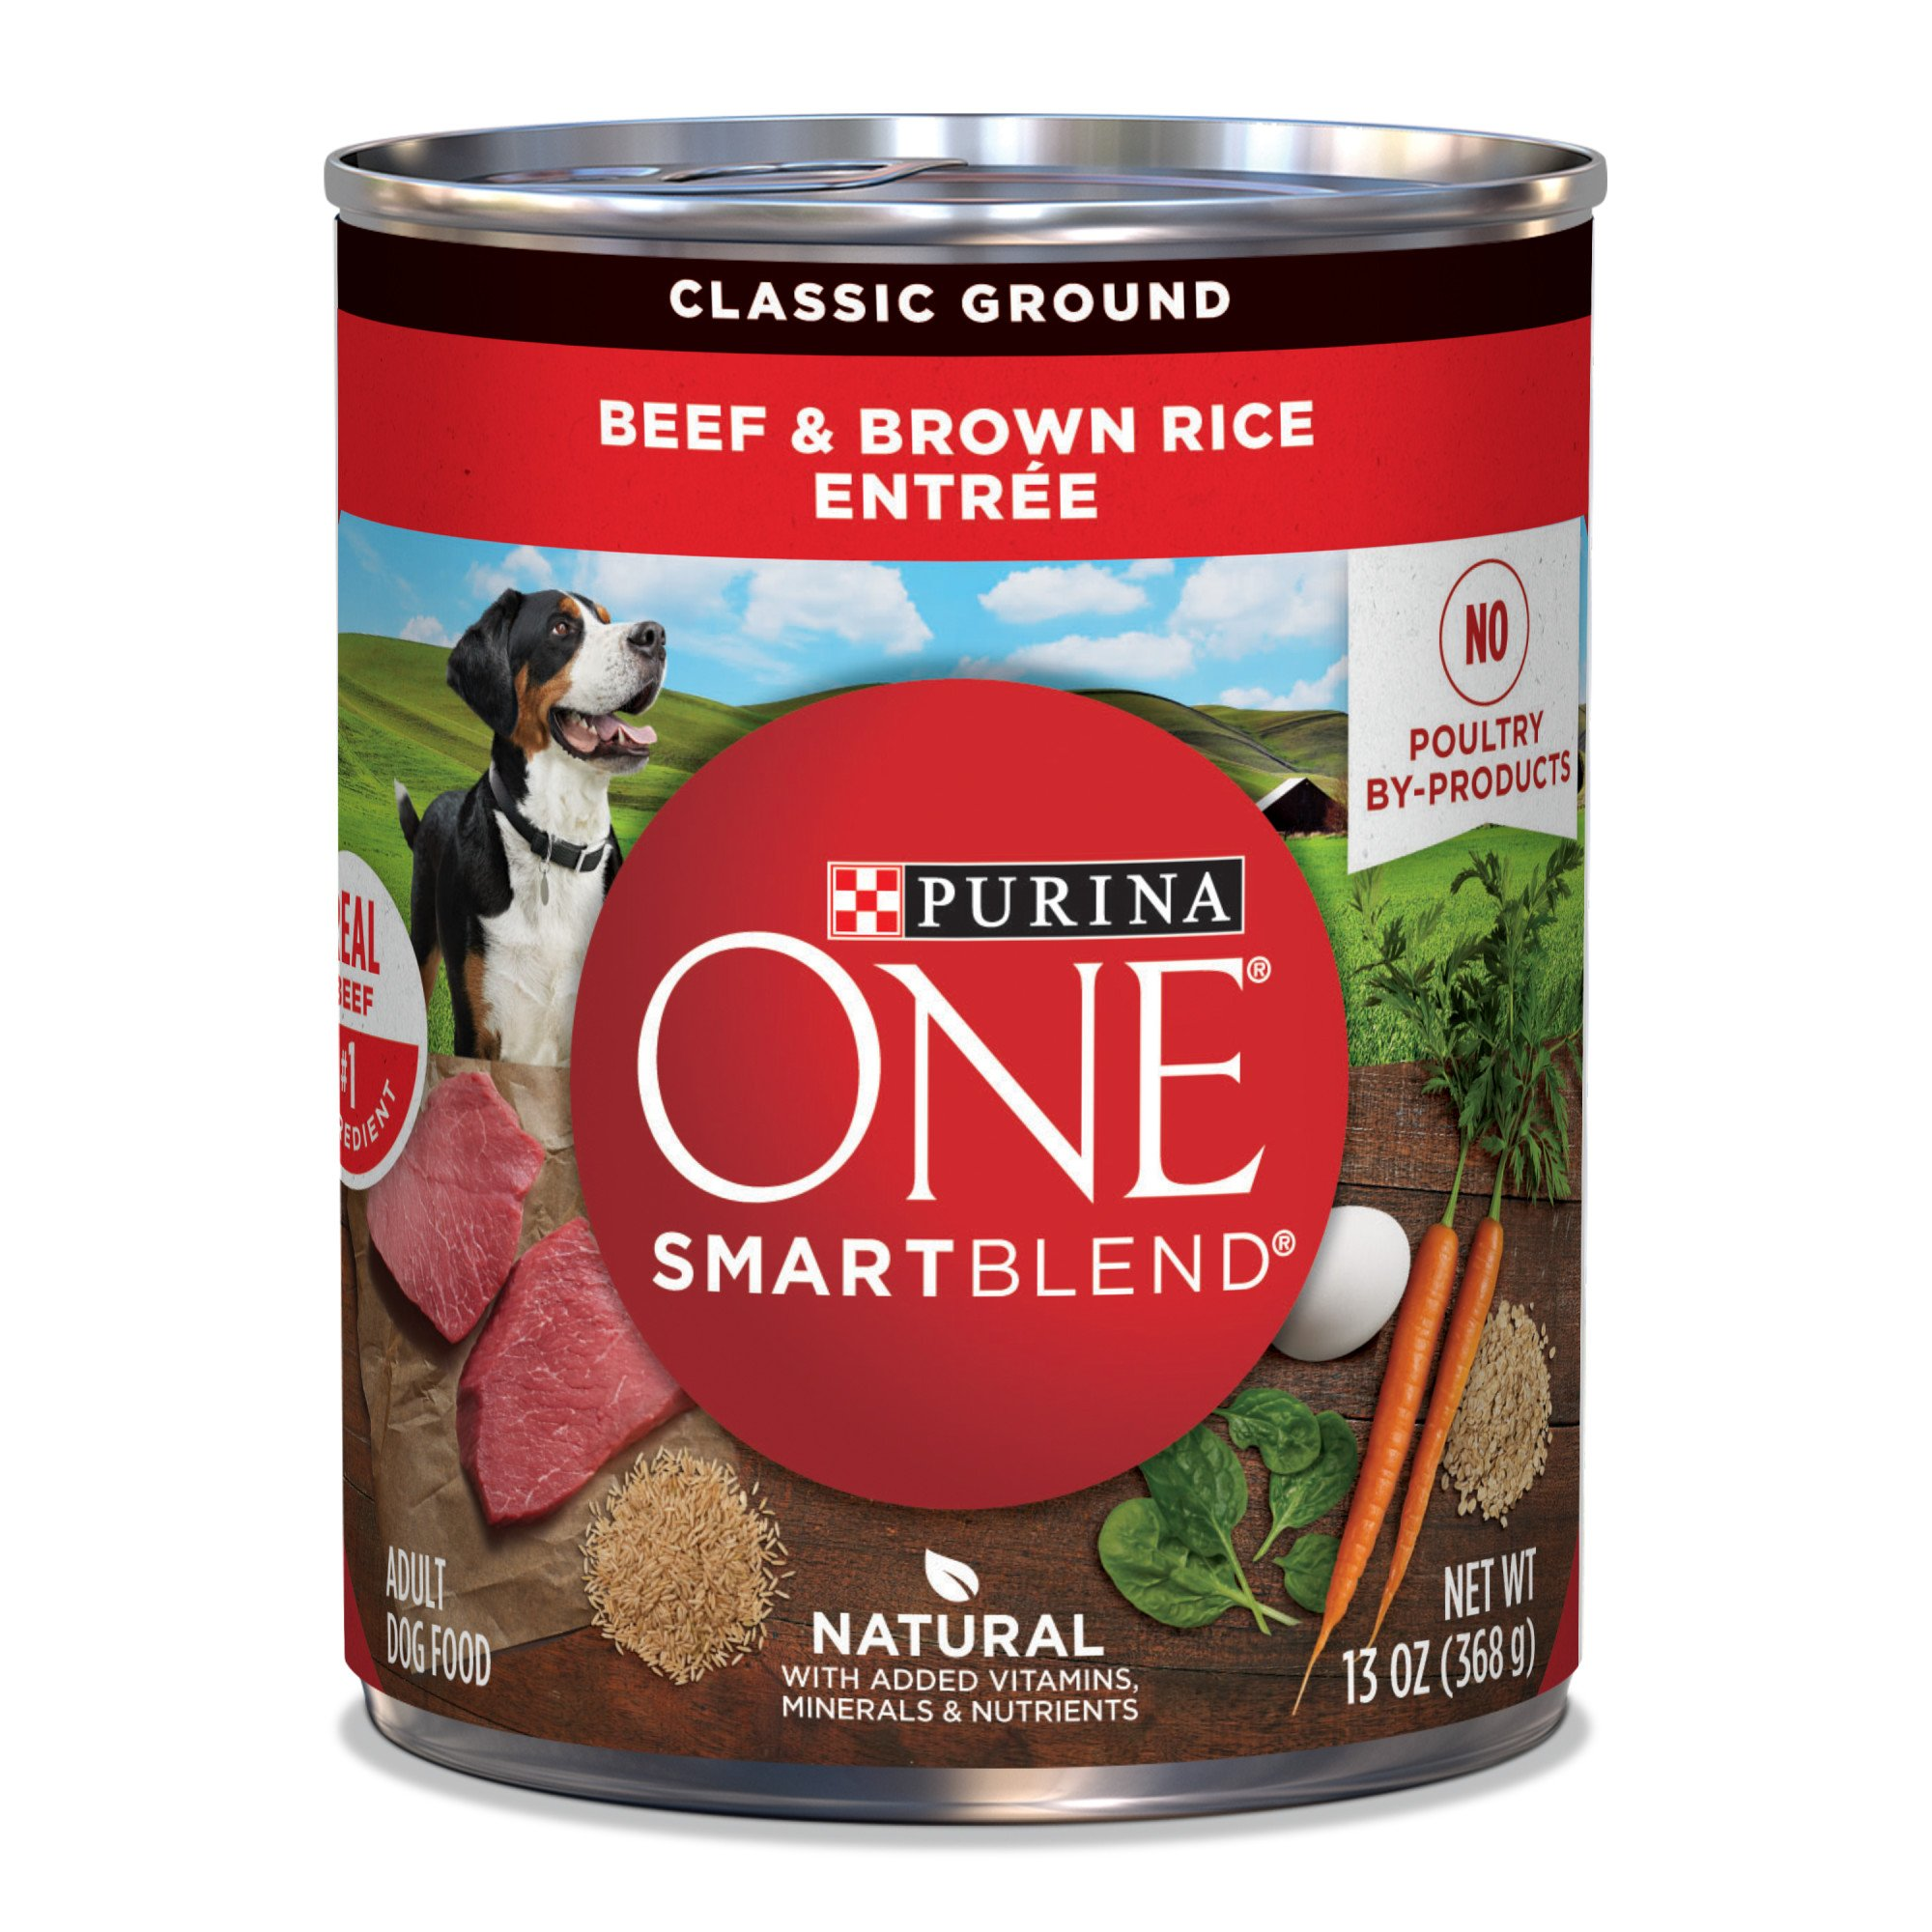 Purina Pro Plan Wet: Find large selection & incredible deals at anatomi.ga!Enjoy Big Savings · Find BEST DEALS now · 95% Customer Satisfaction · Huge Selection.